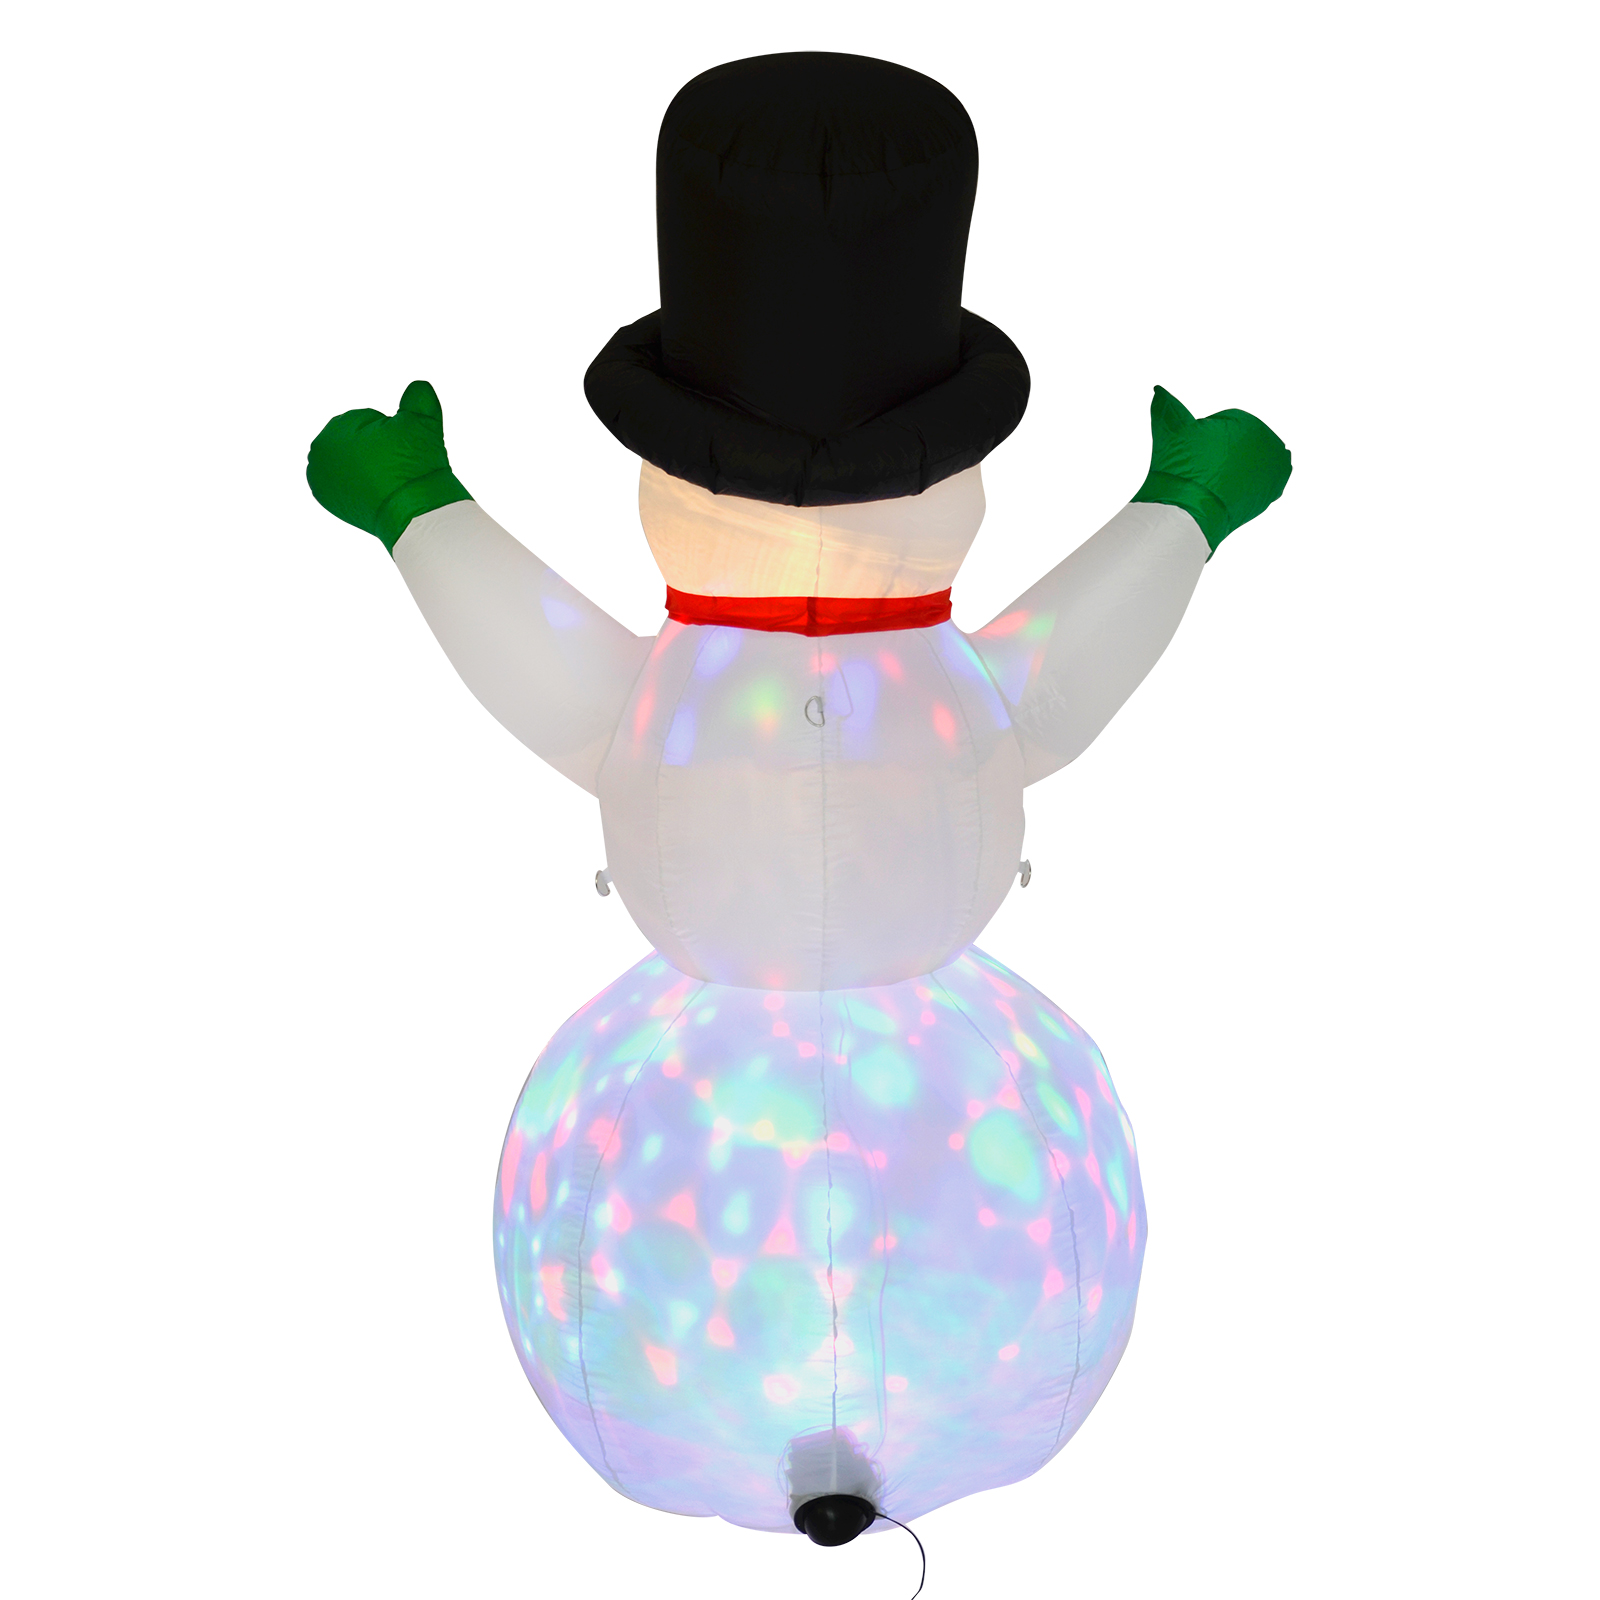 Xl 6ft inflatable snowman outdoor decoration light up led for Outdoor light up ornaments